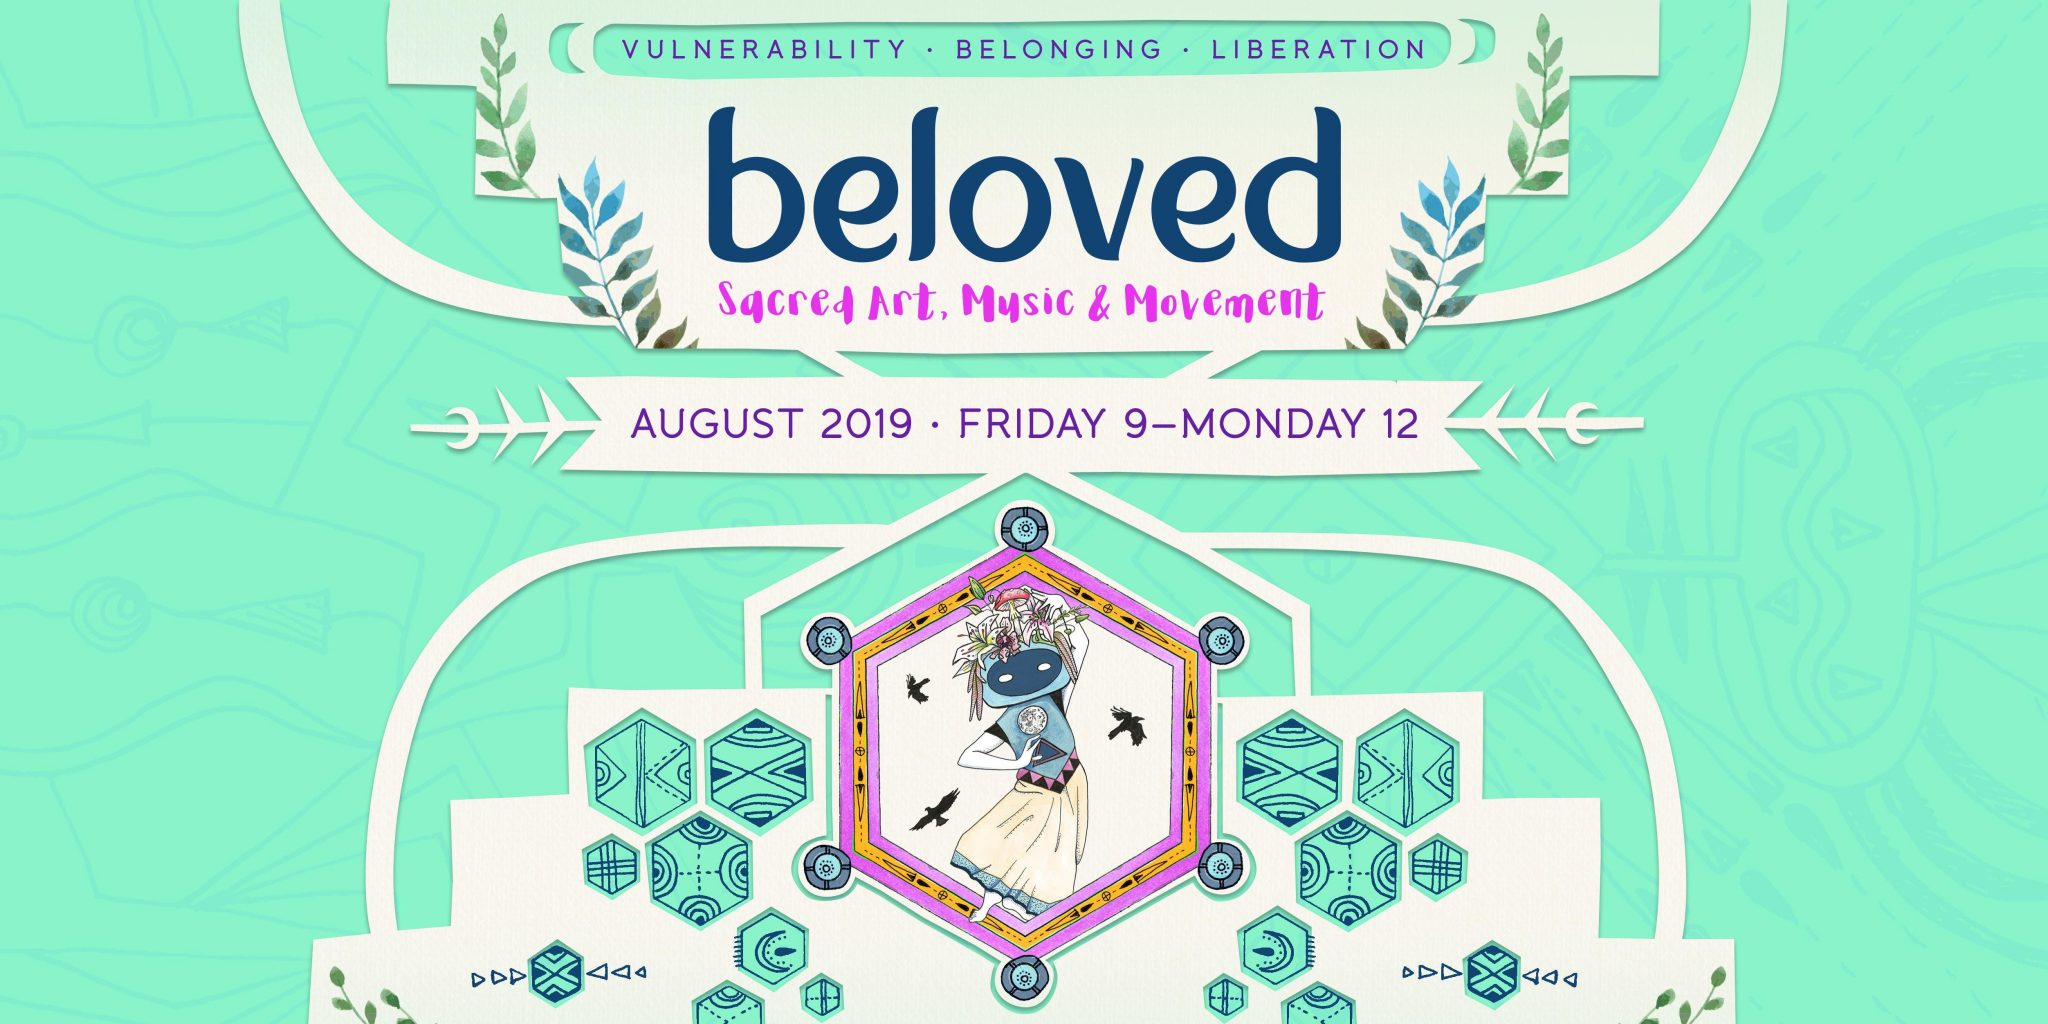 Beloved 2019: Sacred Art, Music & Movement